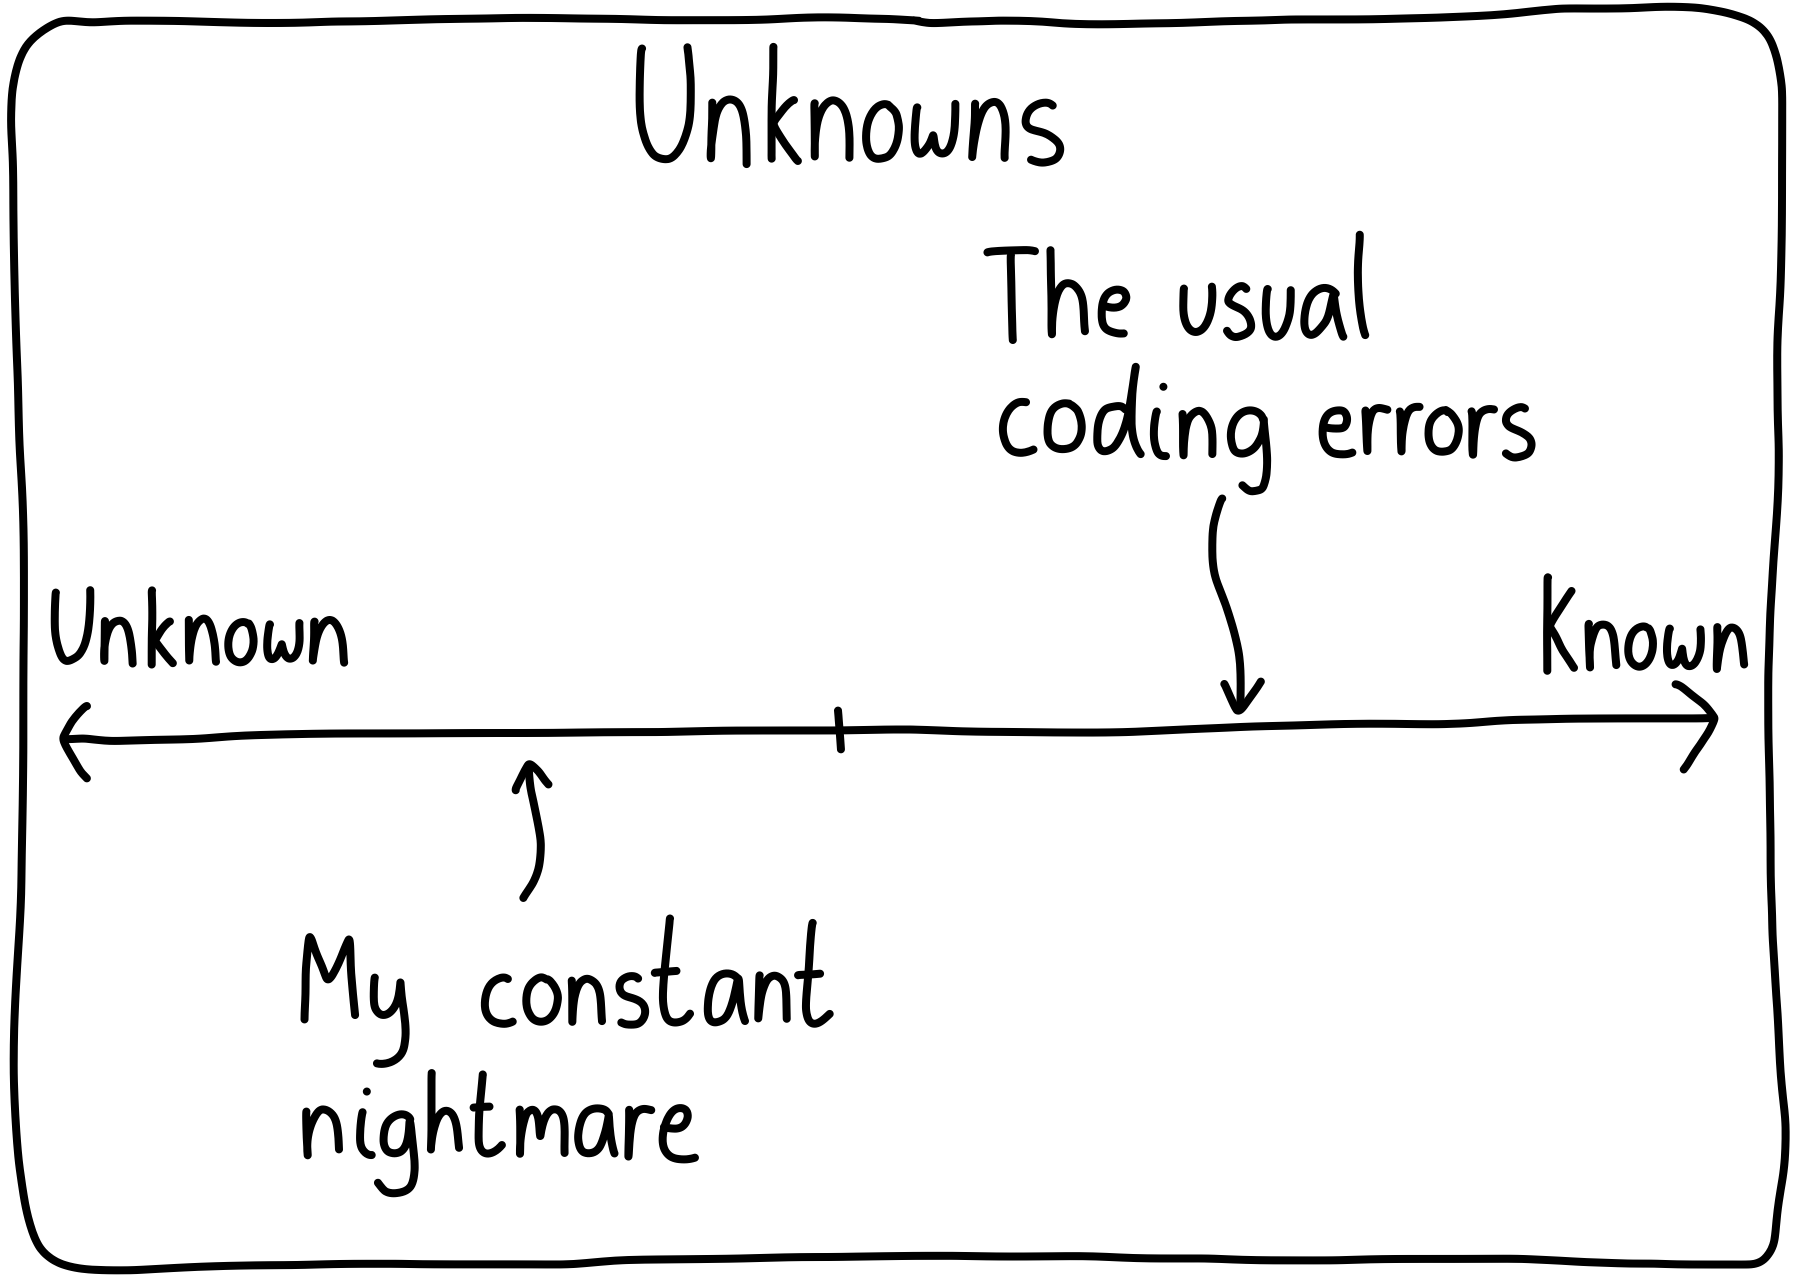 A one-dimensional line with unknown unknowns on the left, and known unknowns on the right. The usual coding errors are on the right, but the real sneaky ones are on the left.